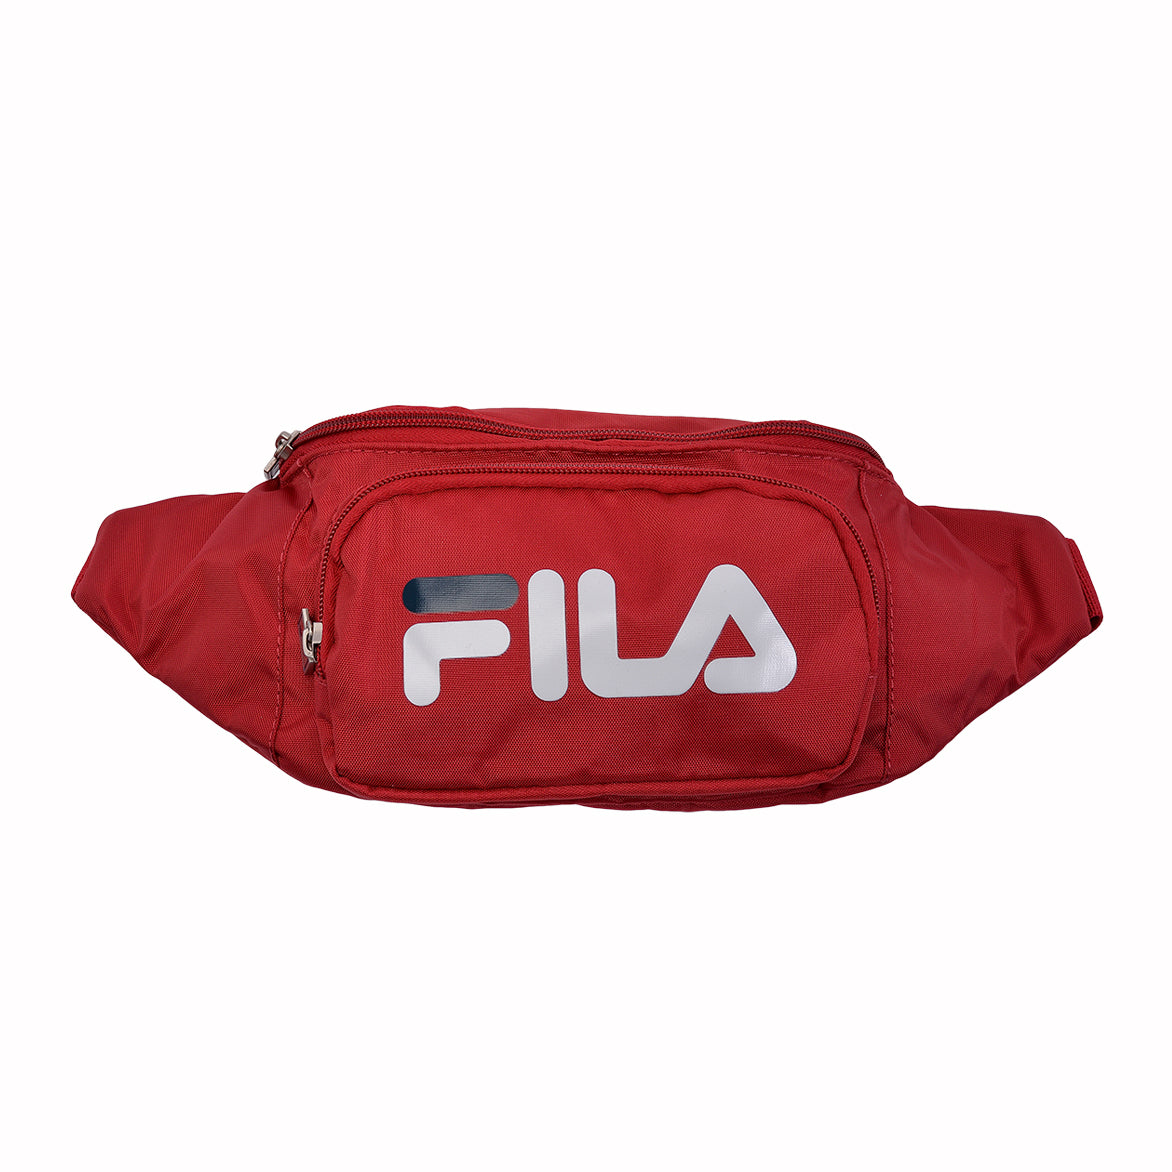 FILA FANNYPACK - RED